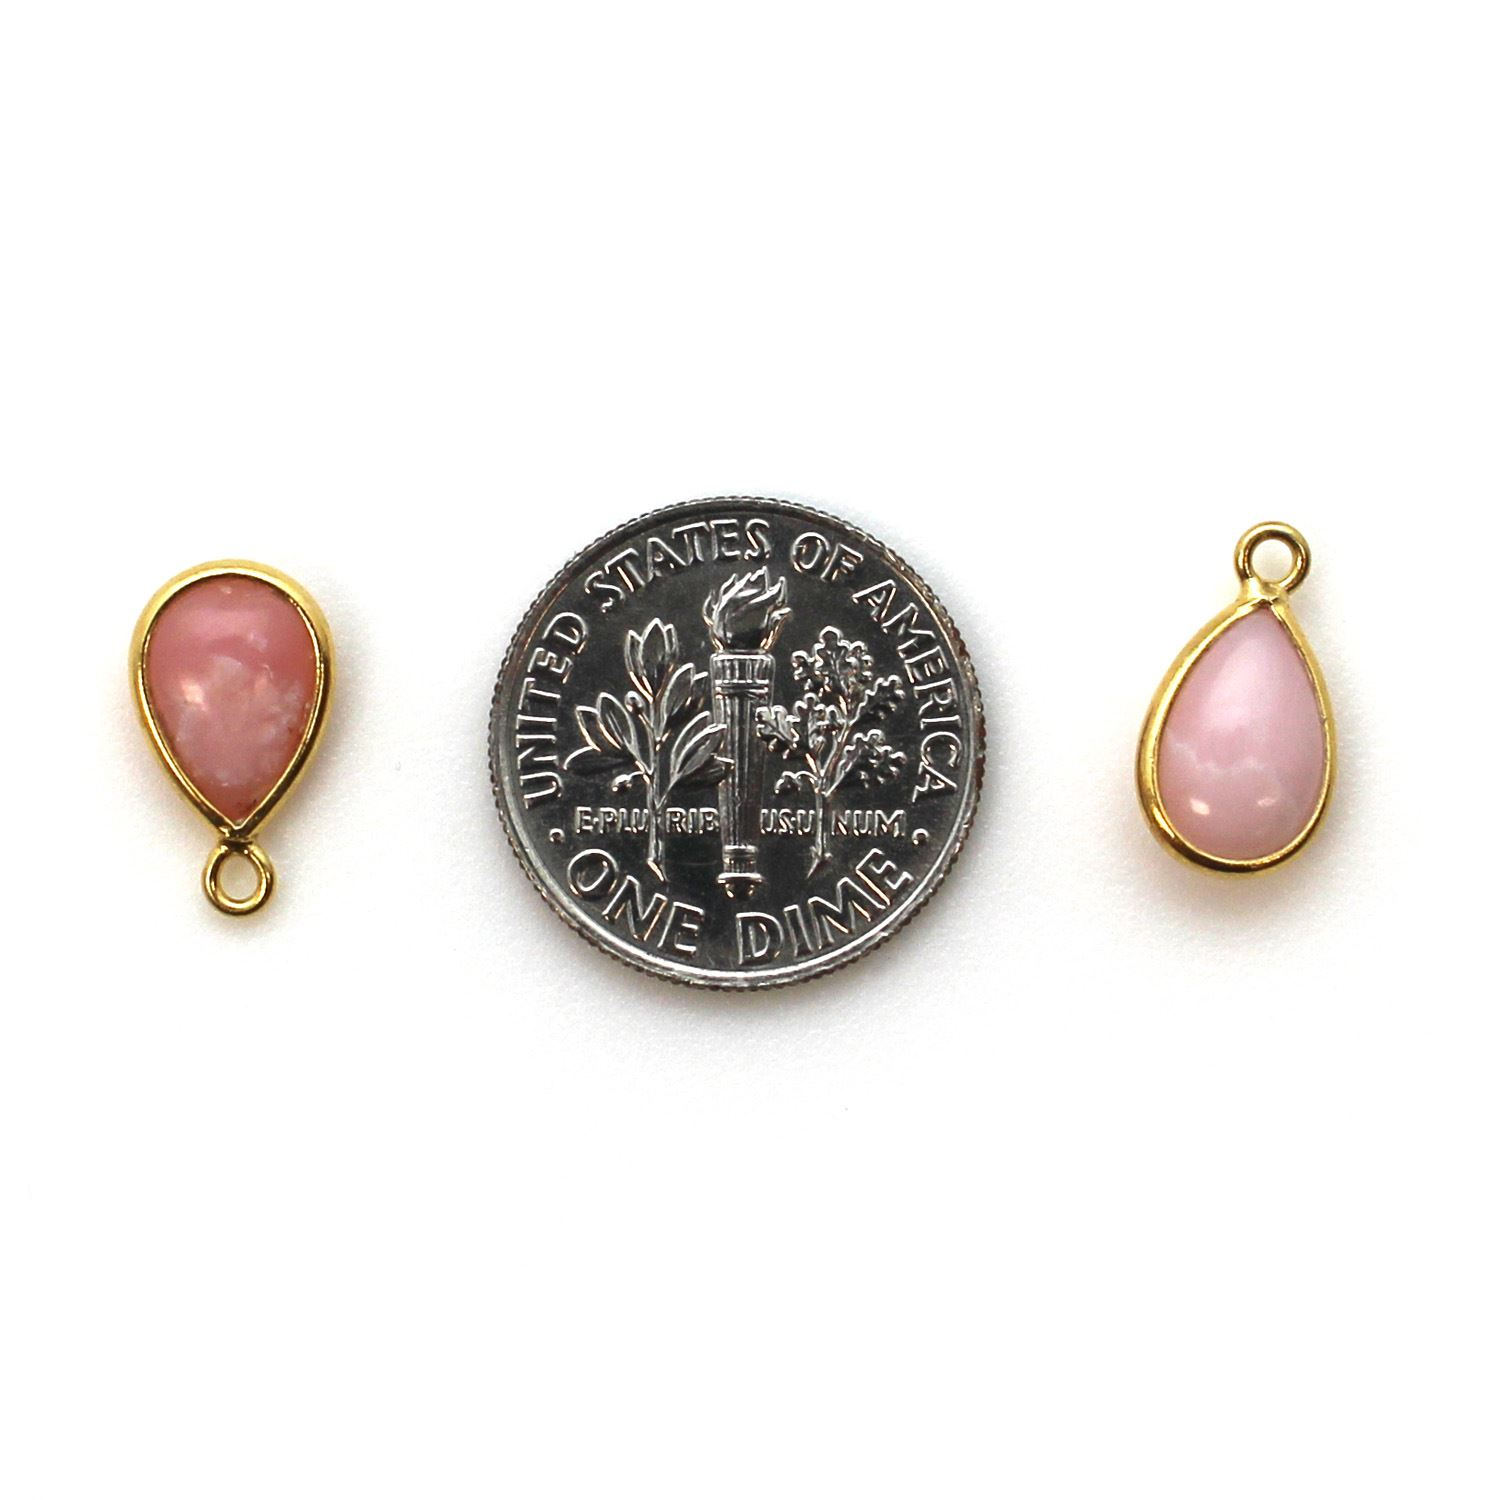 Bezel Charm Pendant - Gold Plated Sterling Silver Charm - Pink Opal - Tiny Teardrop Shape